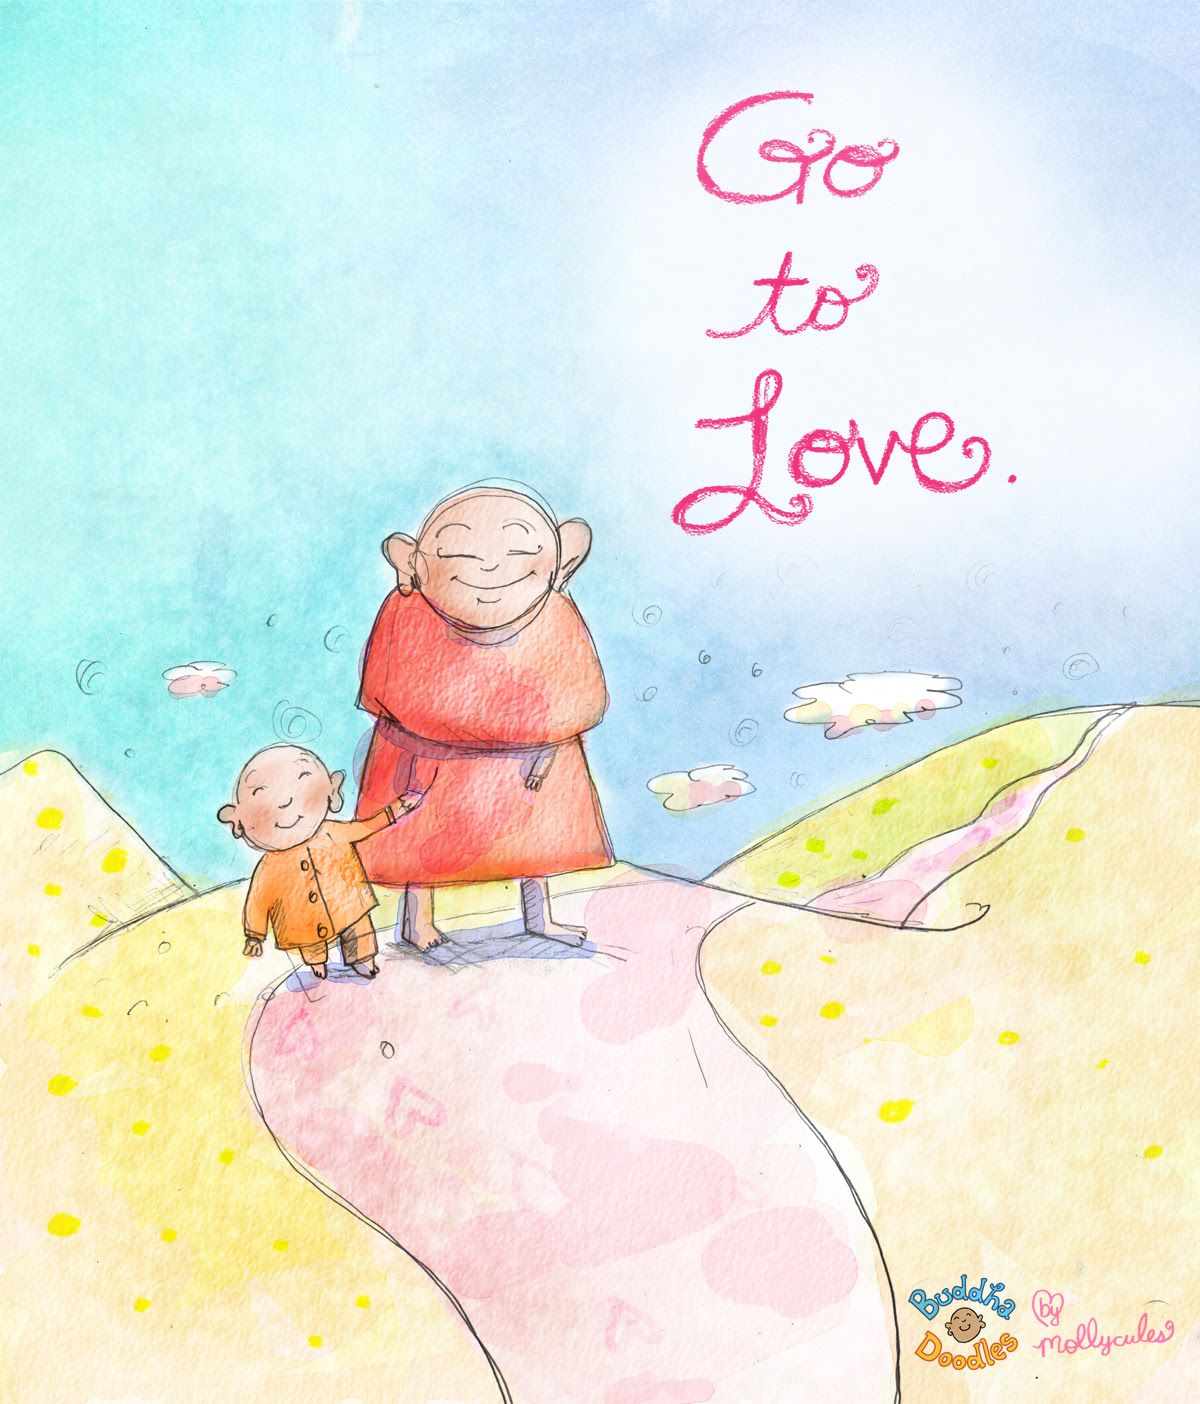 Go to love